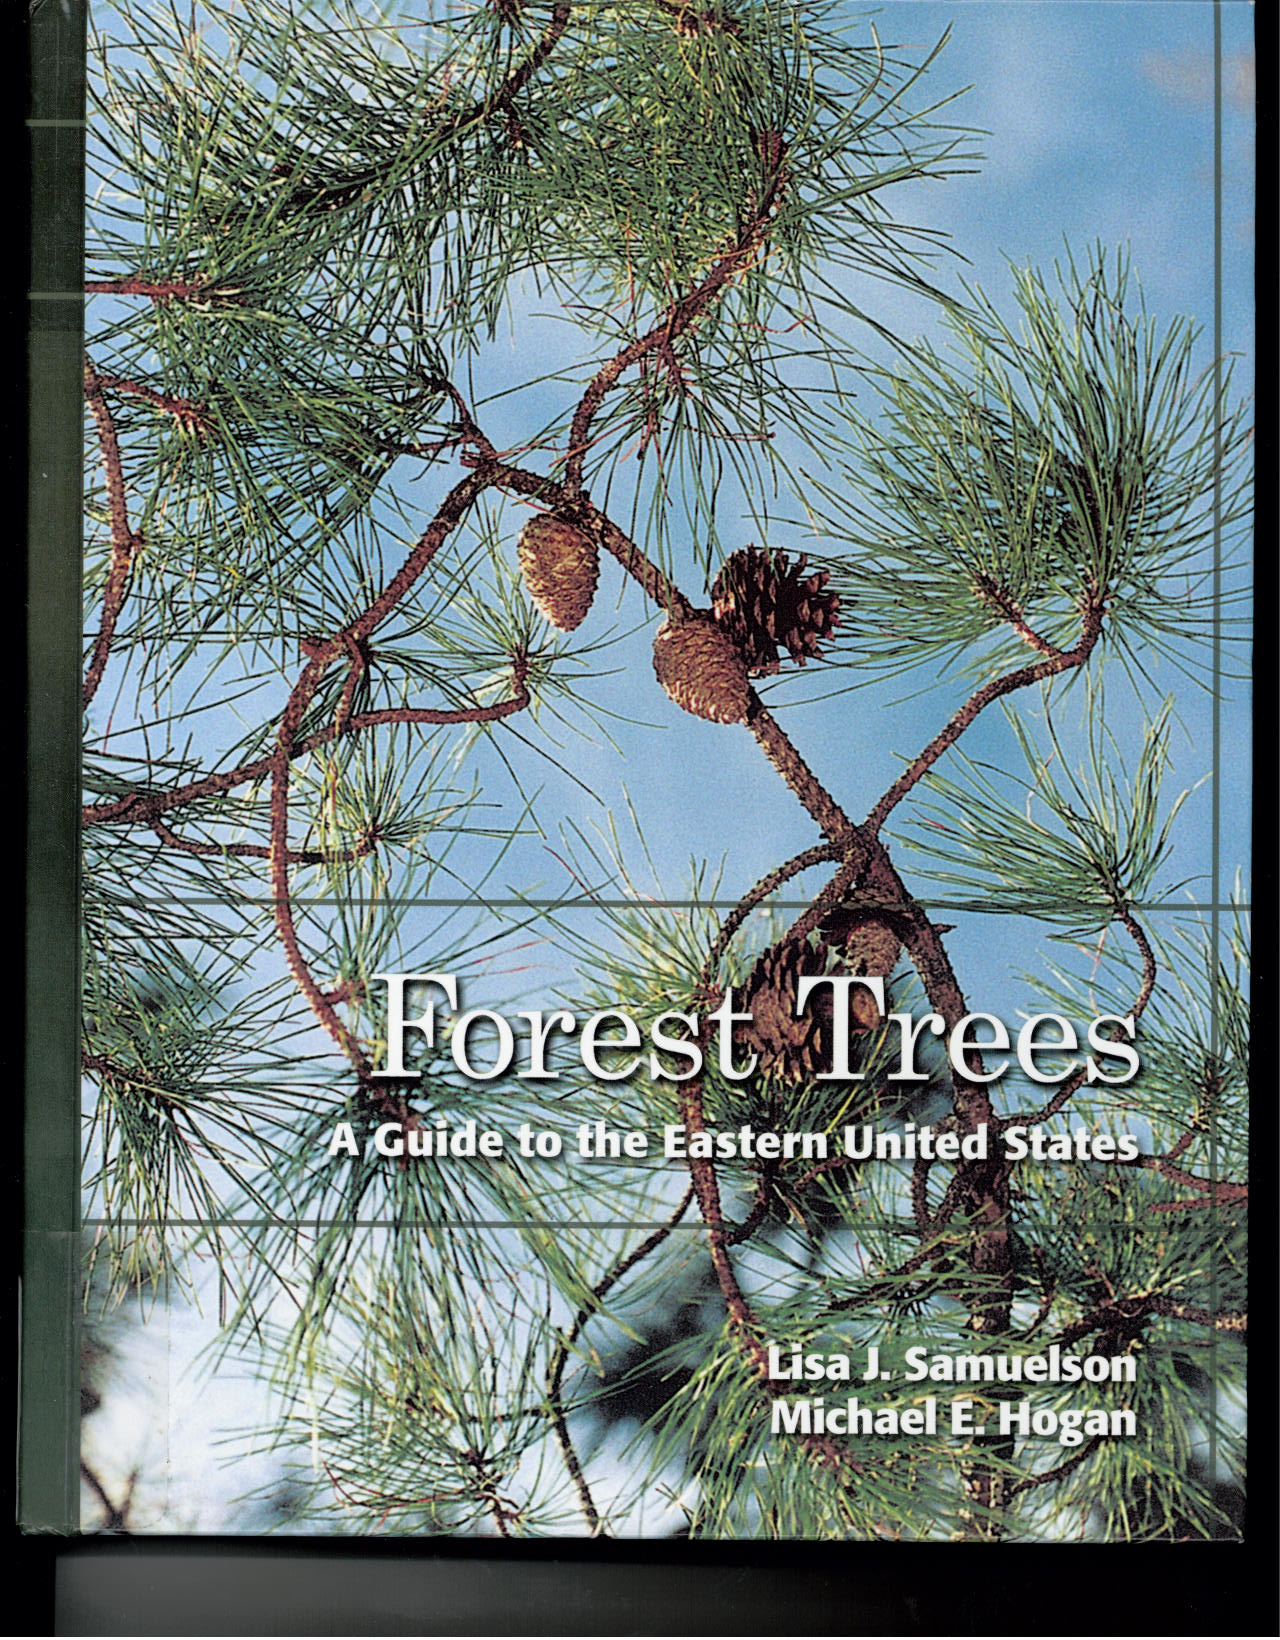 Forest Trees cover